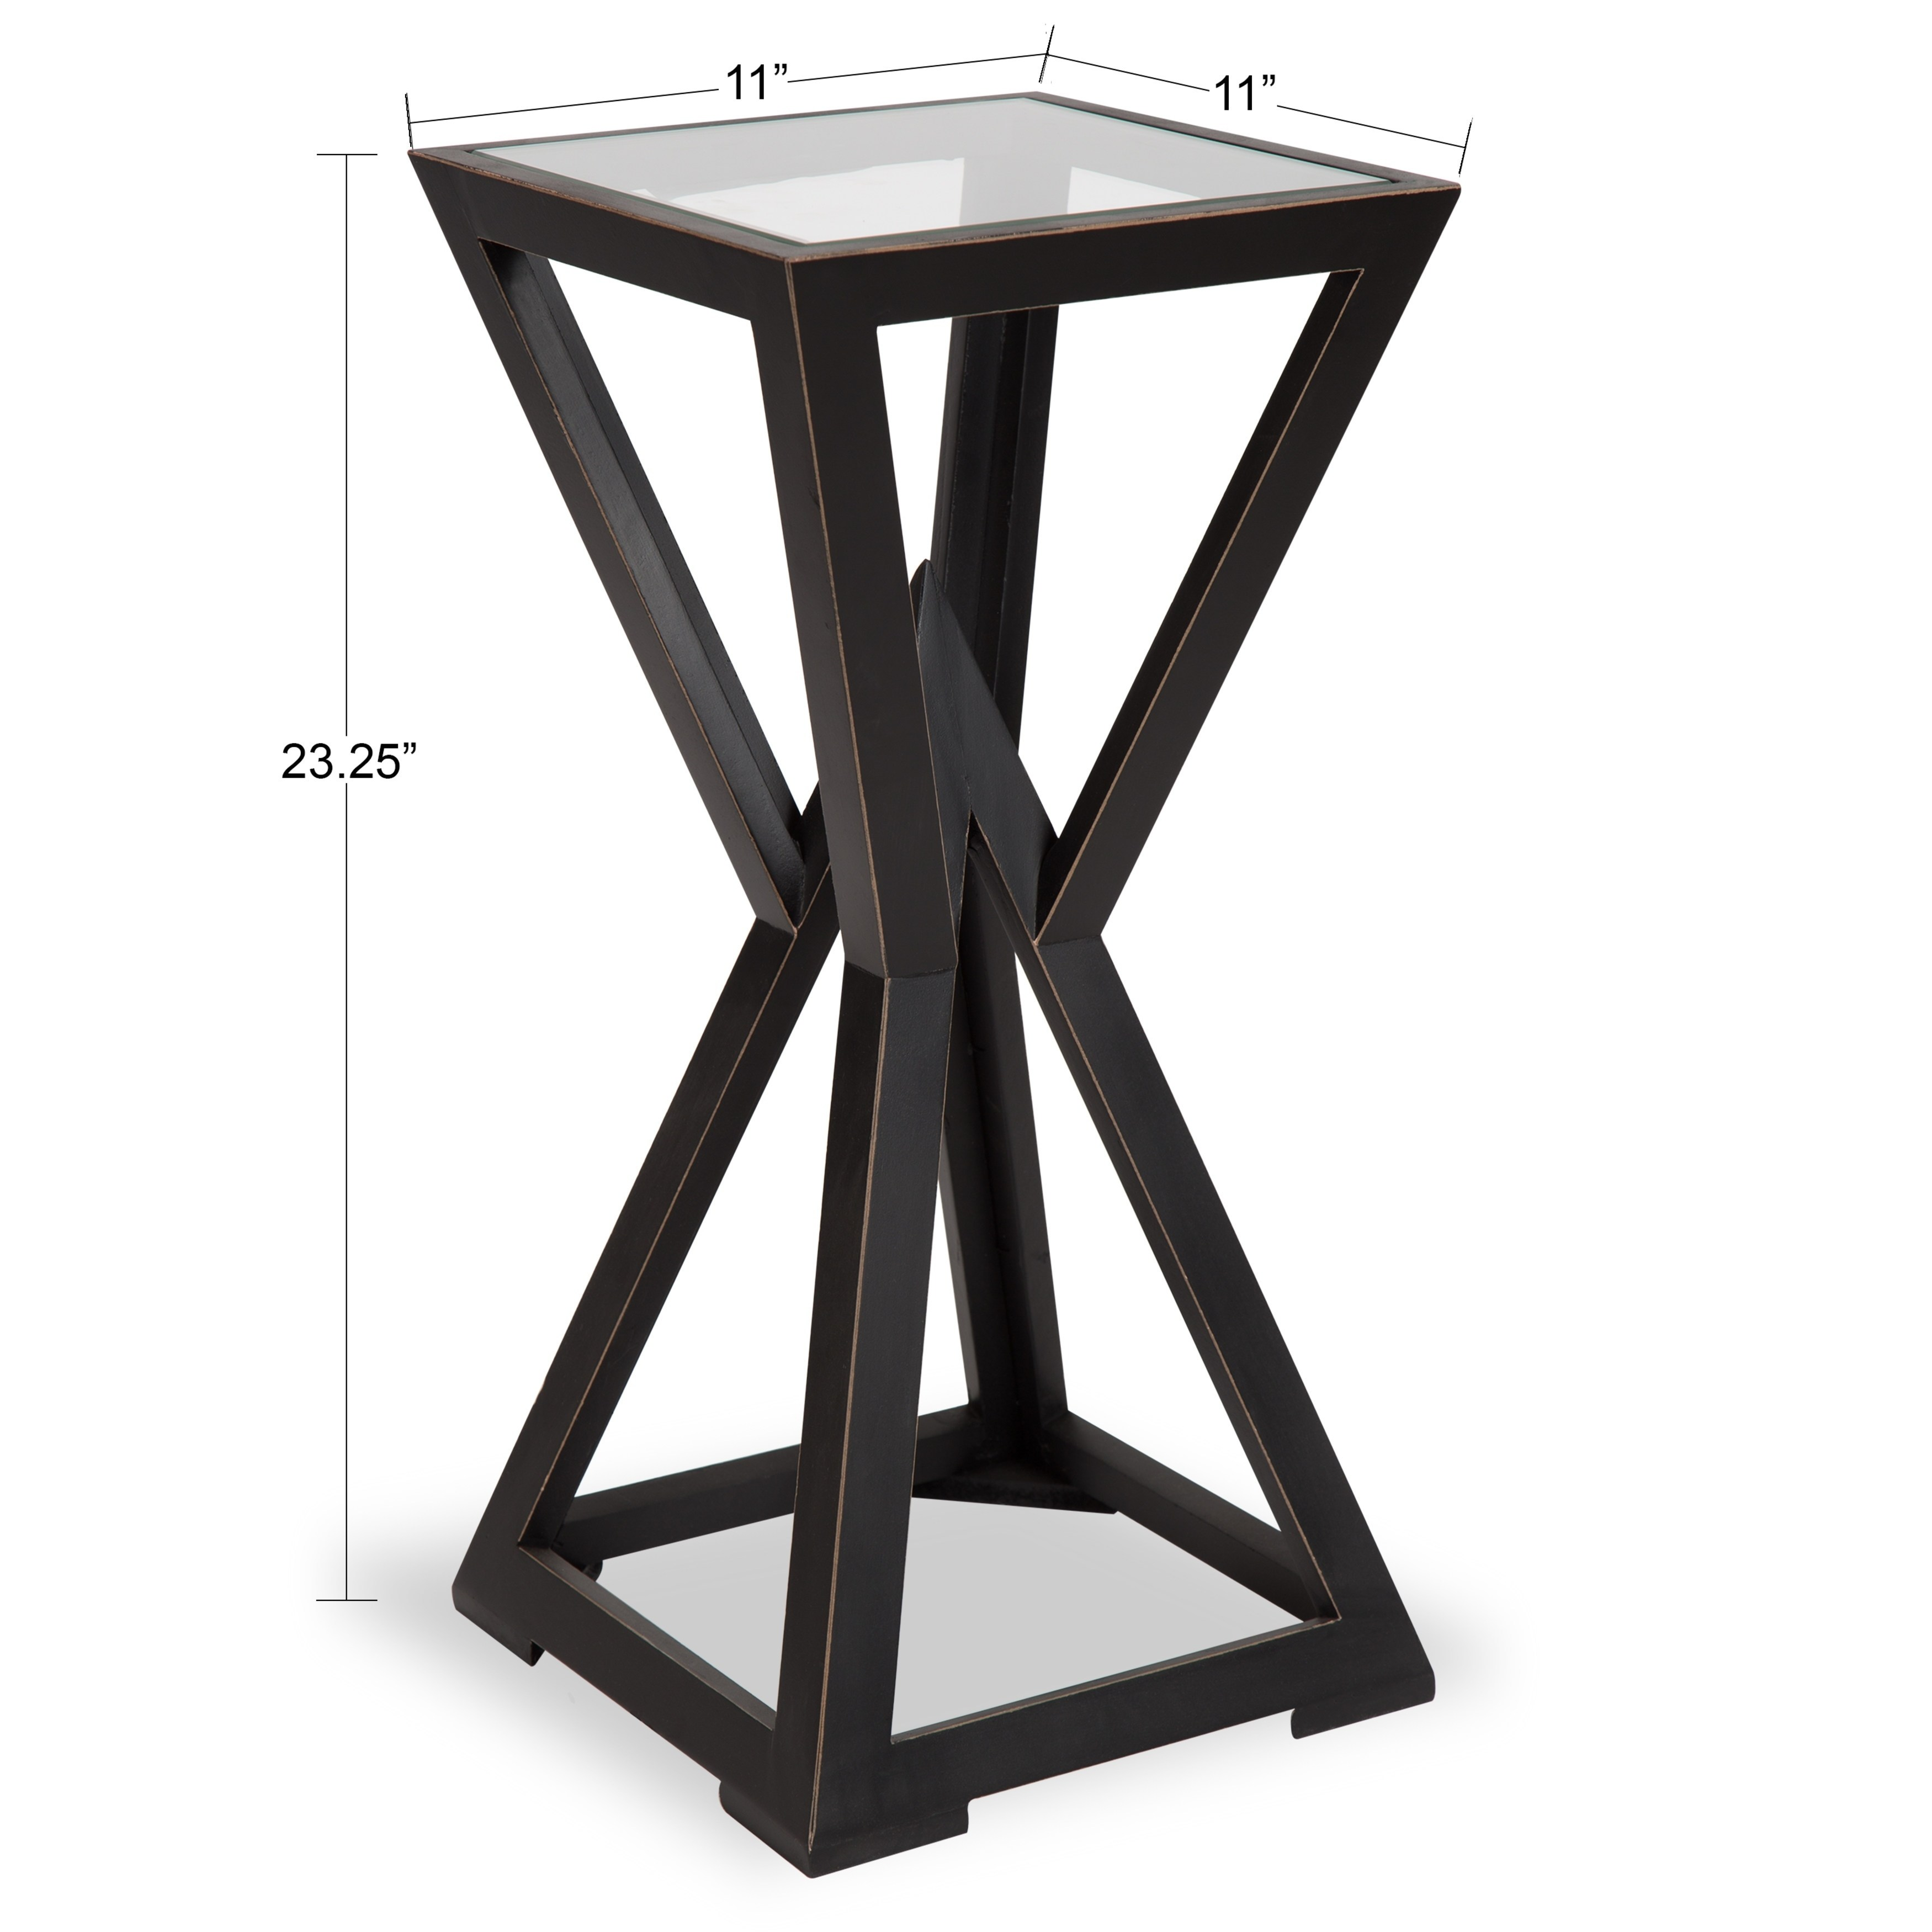 kate and laurel yogi small black wood side end table free room essentials trestle accent shipping today natural cherry tables furniture occasional colorful white bedside lockers